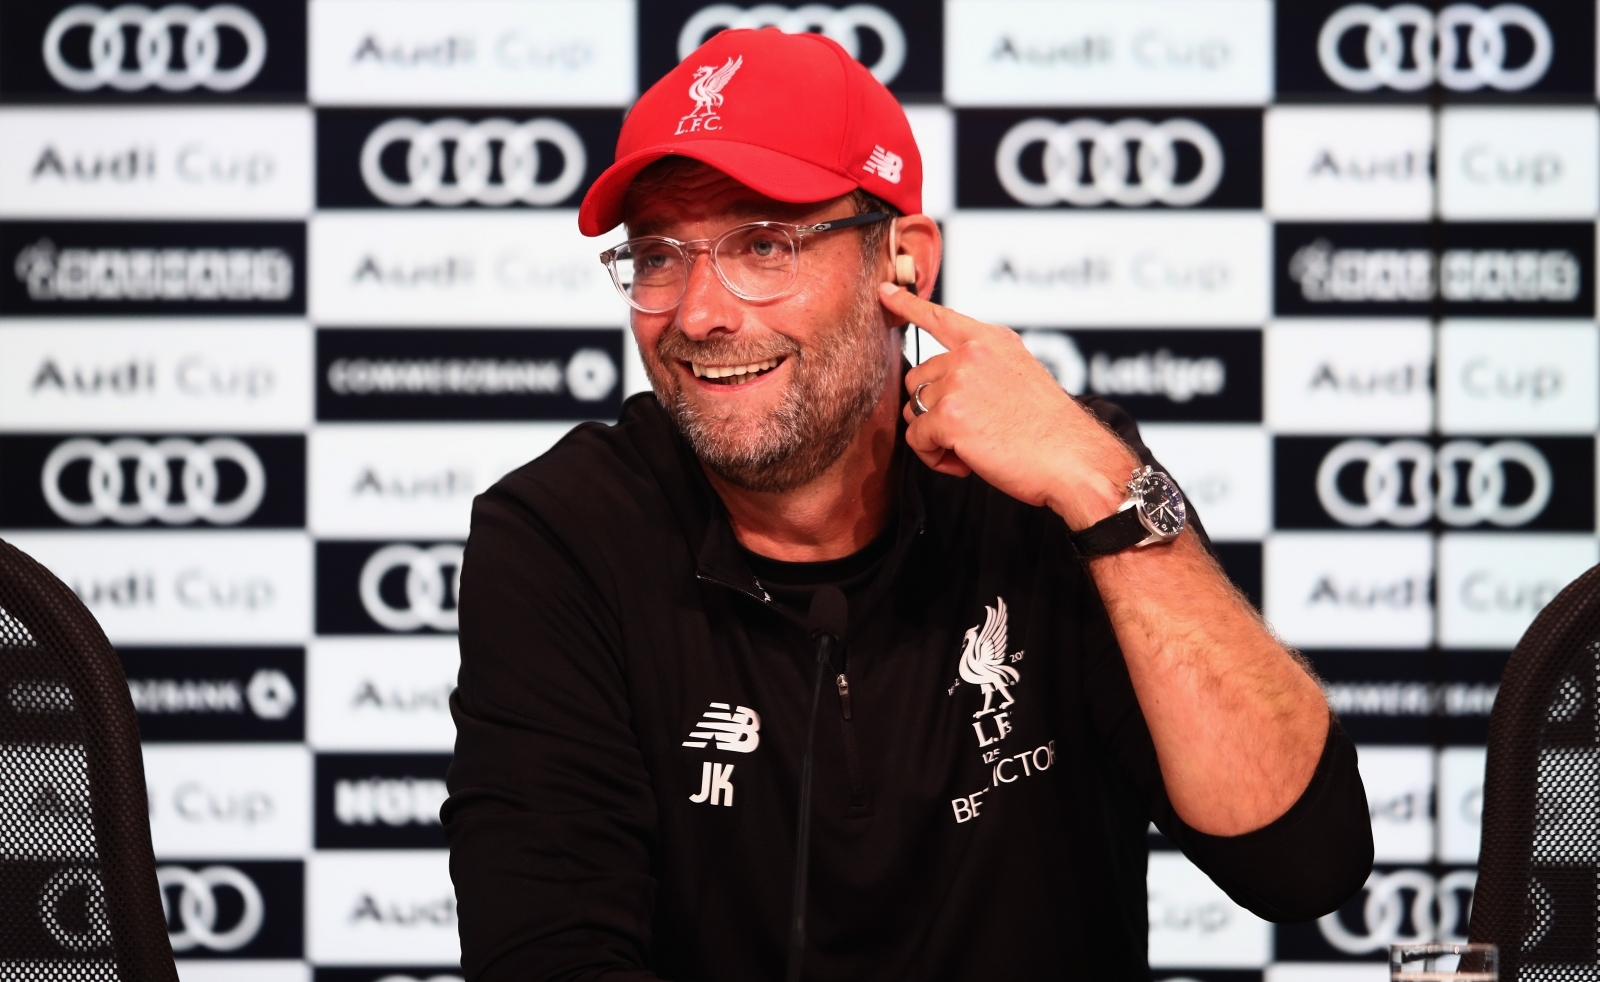 Champions League qualifying draw: Liverpool meet Hoffenheim, Celtic face Astana